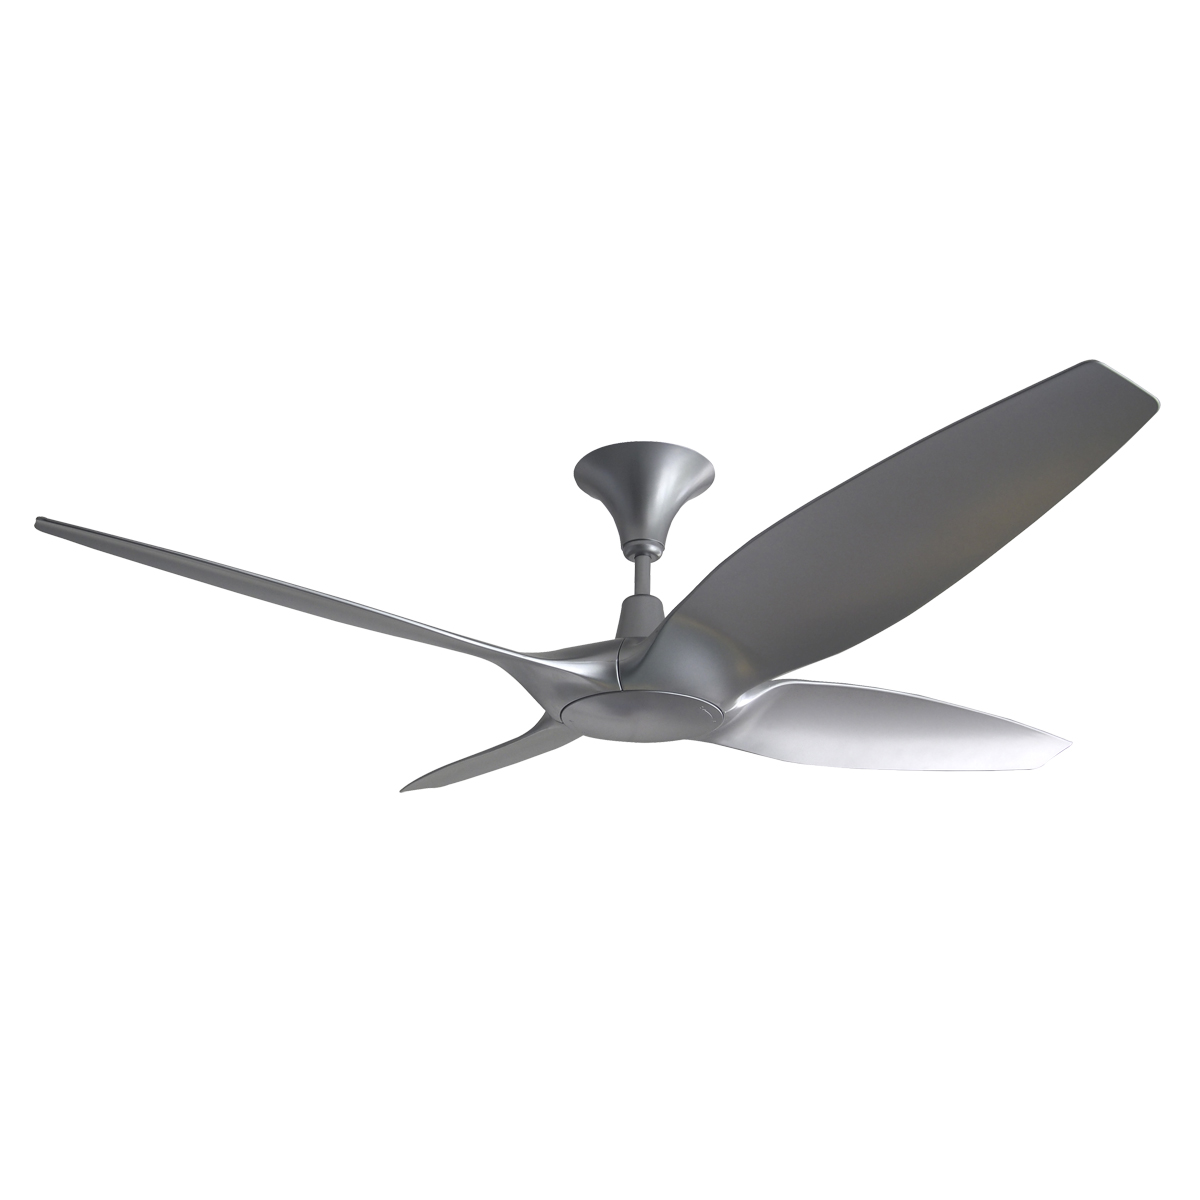 Designer 4 Blade 60 Inch 1524mm Dc Ceiling Fan With Remote Ceiling Fan Specials